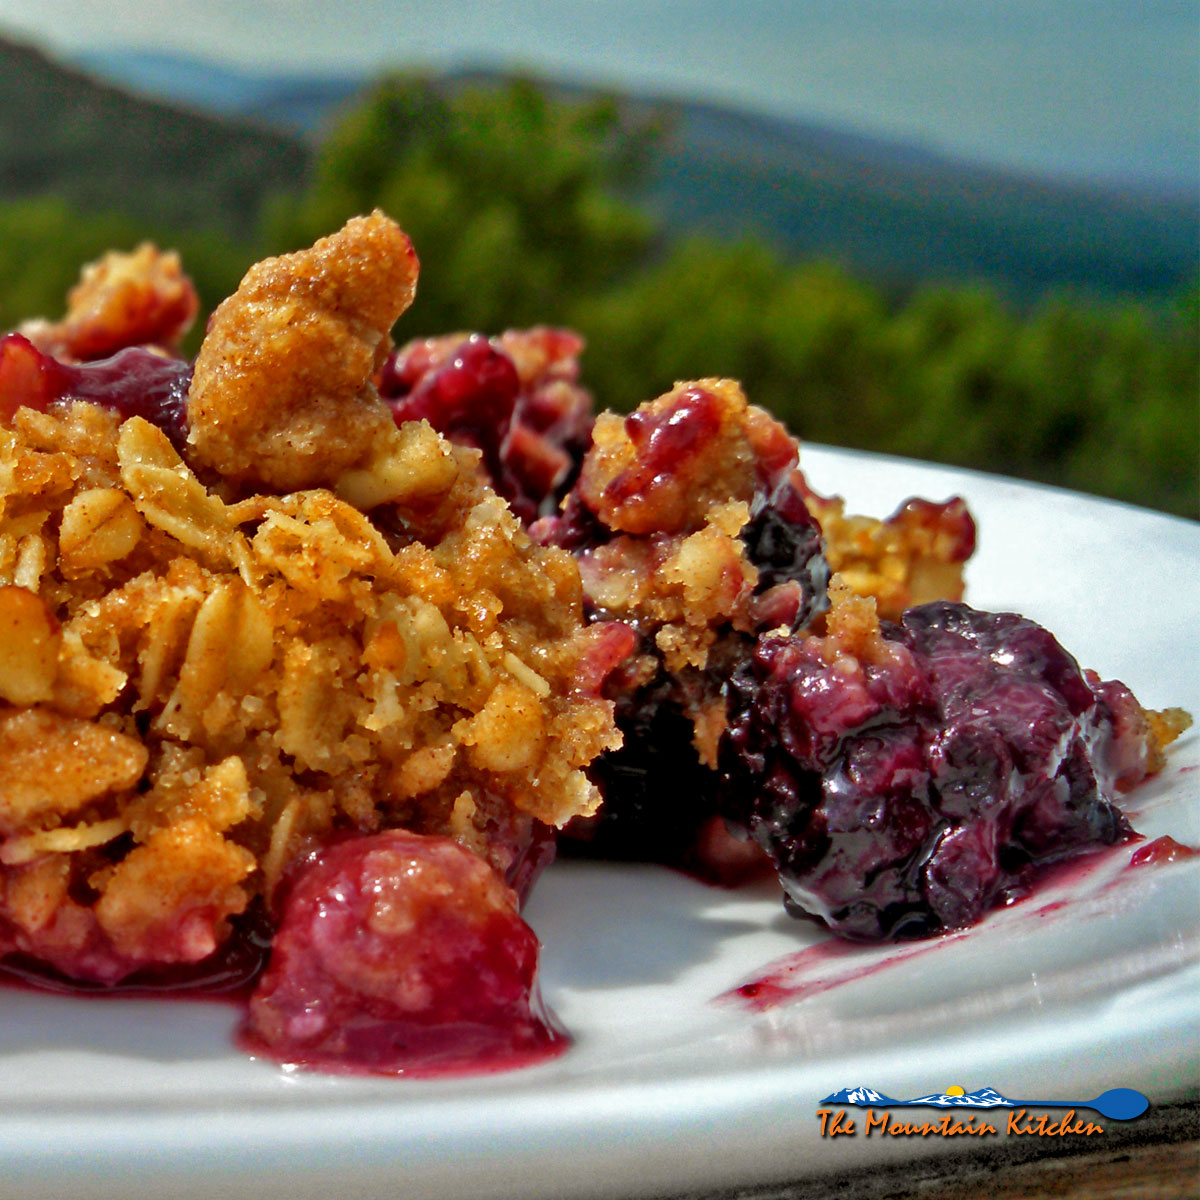 David's blackberry crisp is tart and tangy, topped with rolled oats, brown sugar, pecans, with the warmth of cinnamon, nutmeg and ginger. A summer favorite!